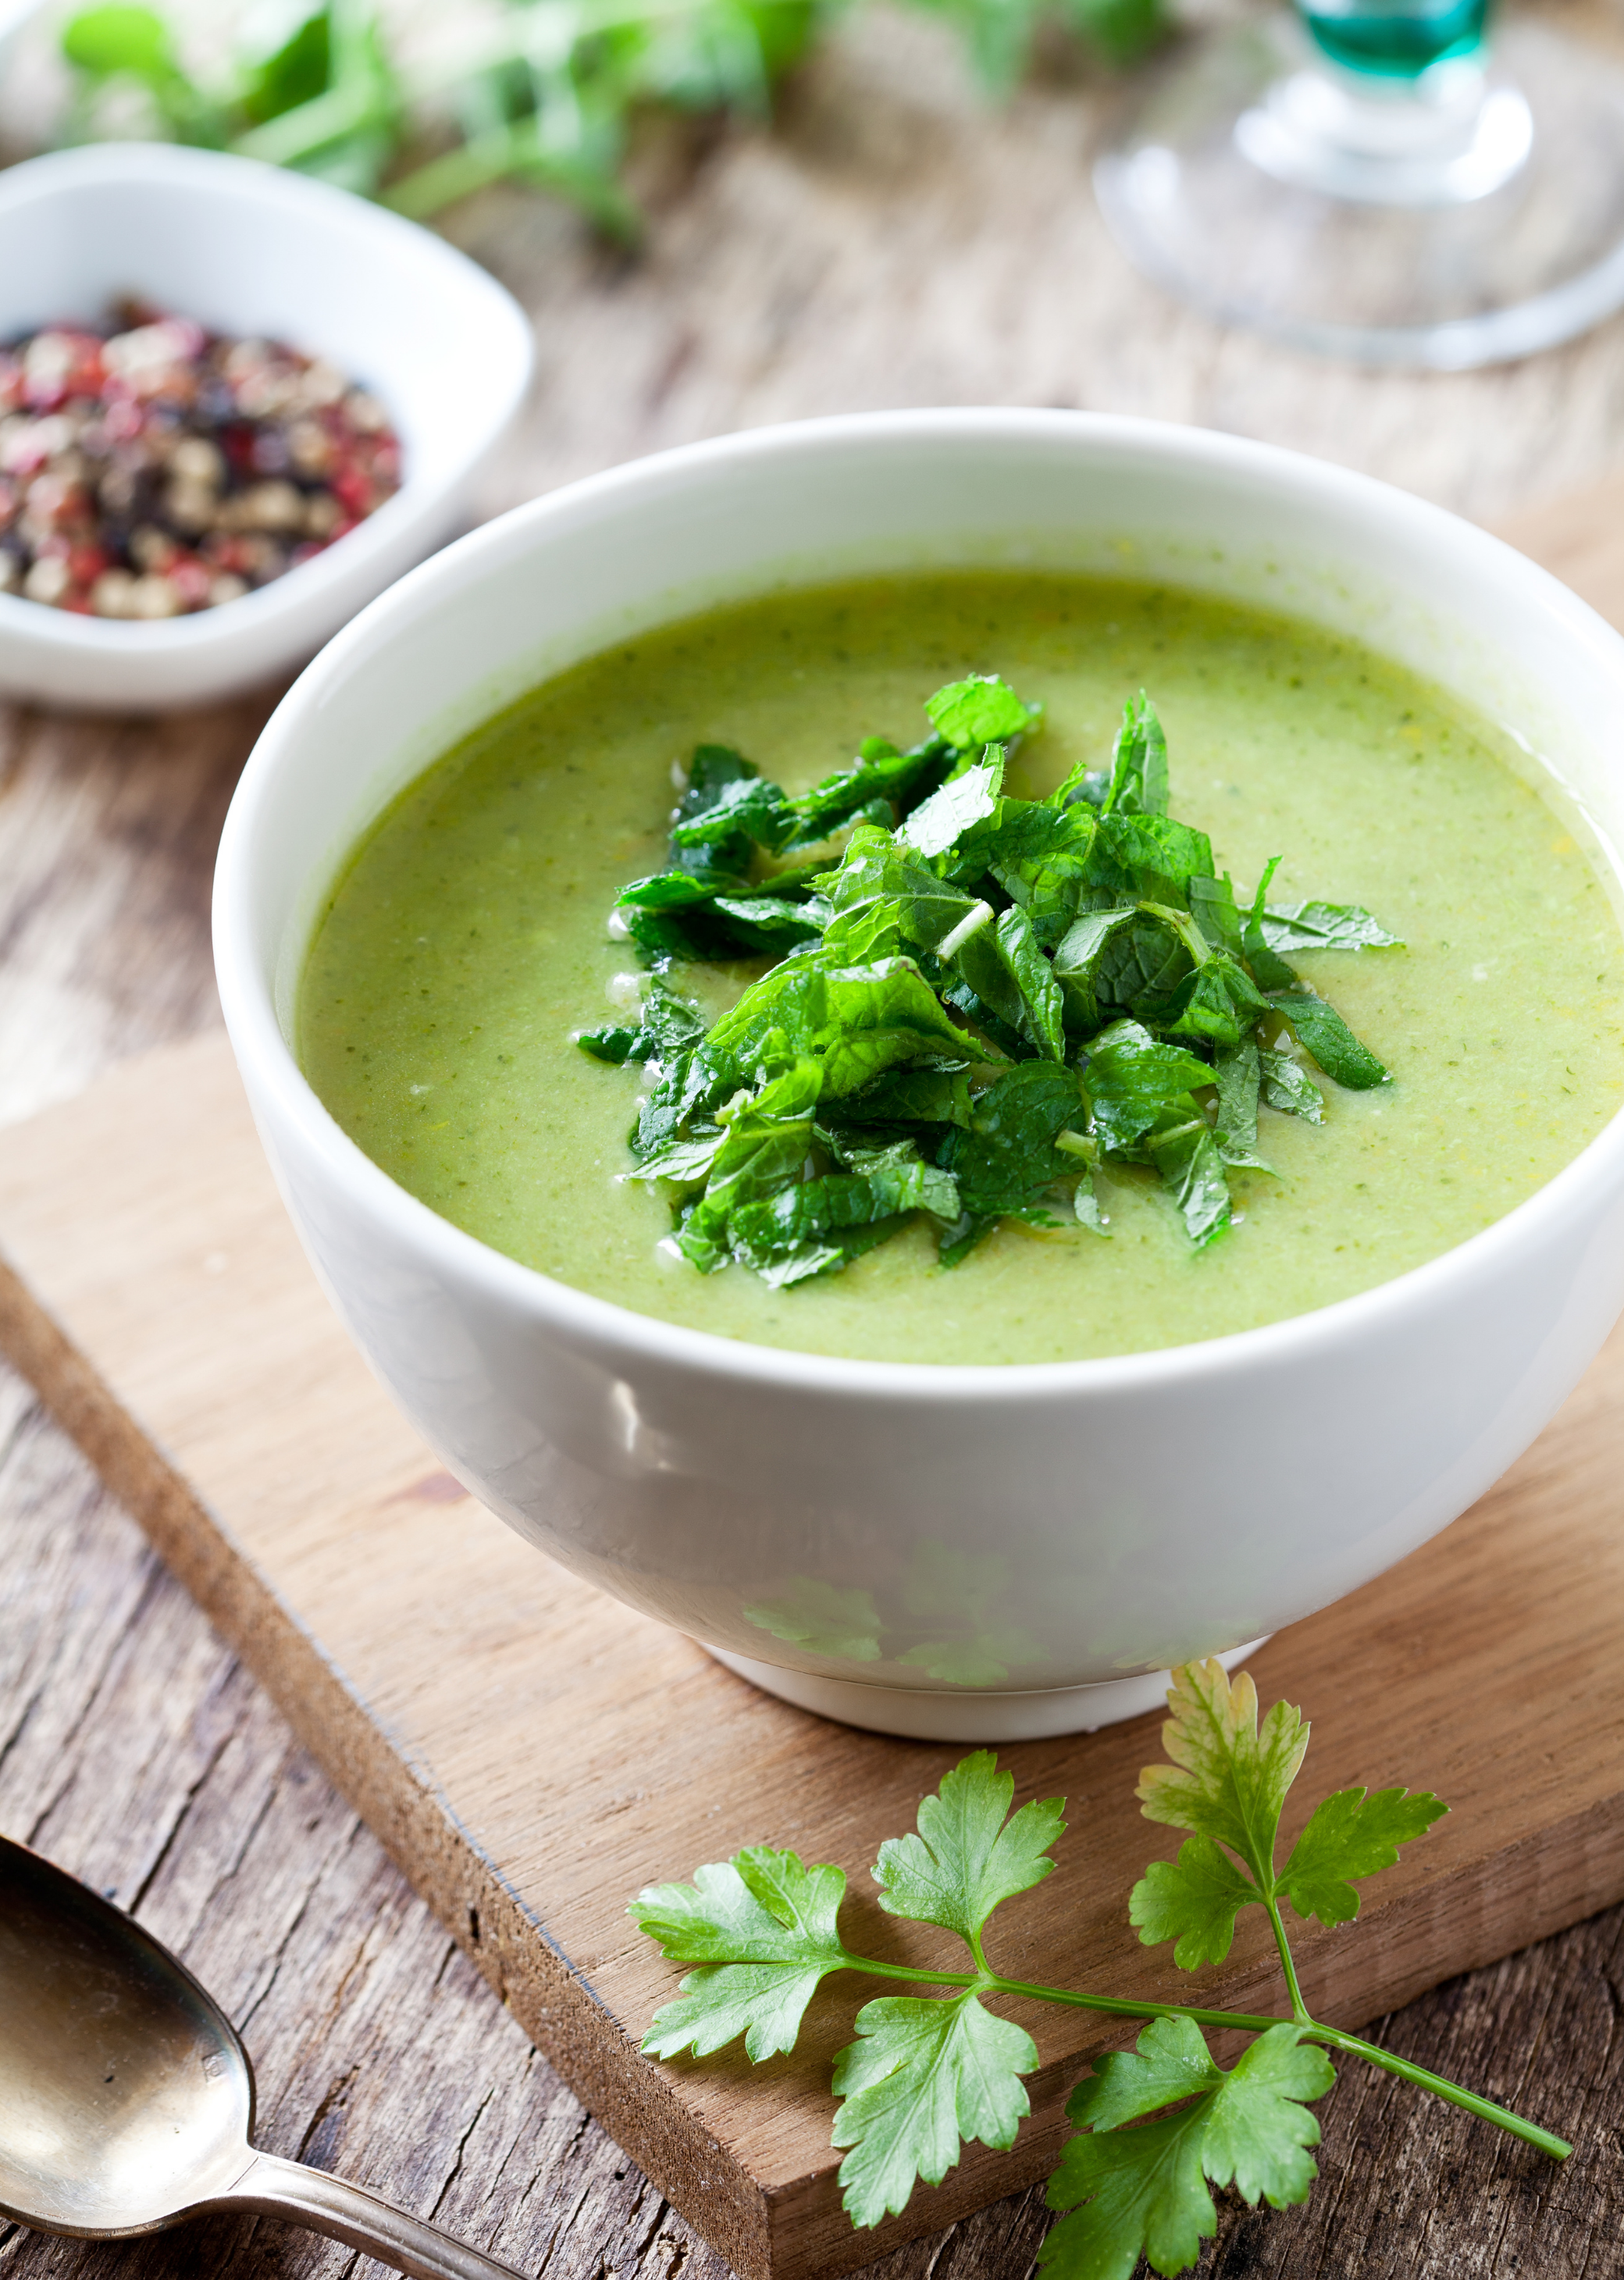 Spinach, Mint and Buttermilk Shorba